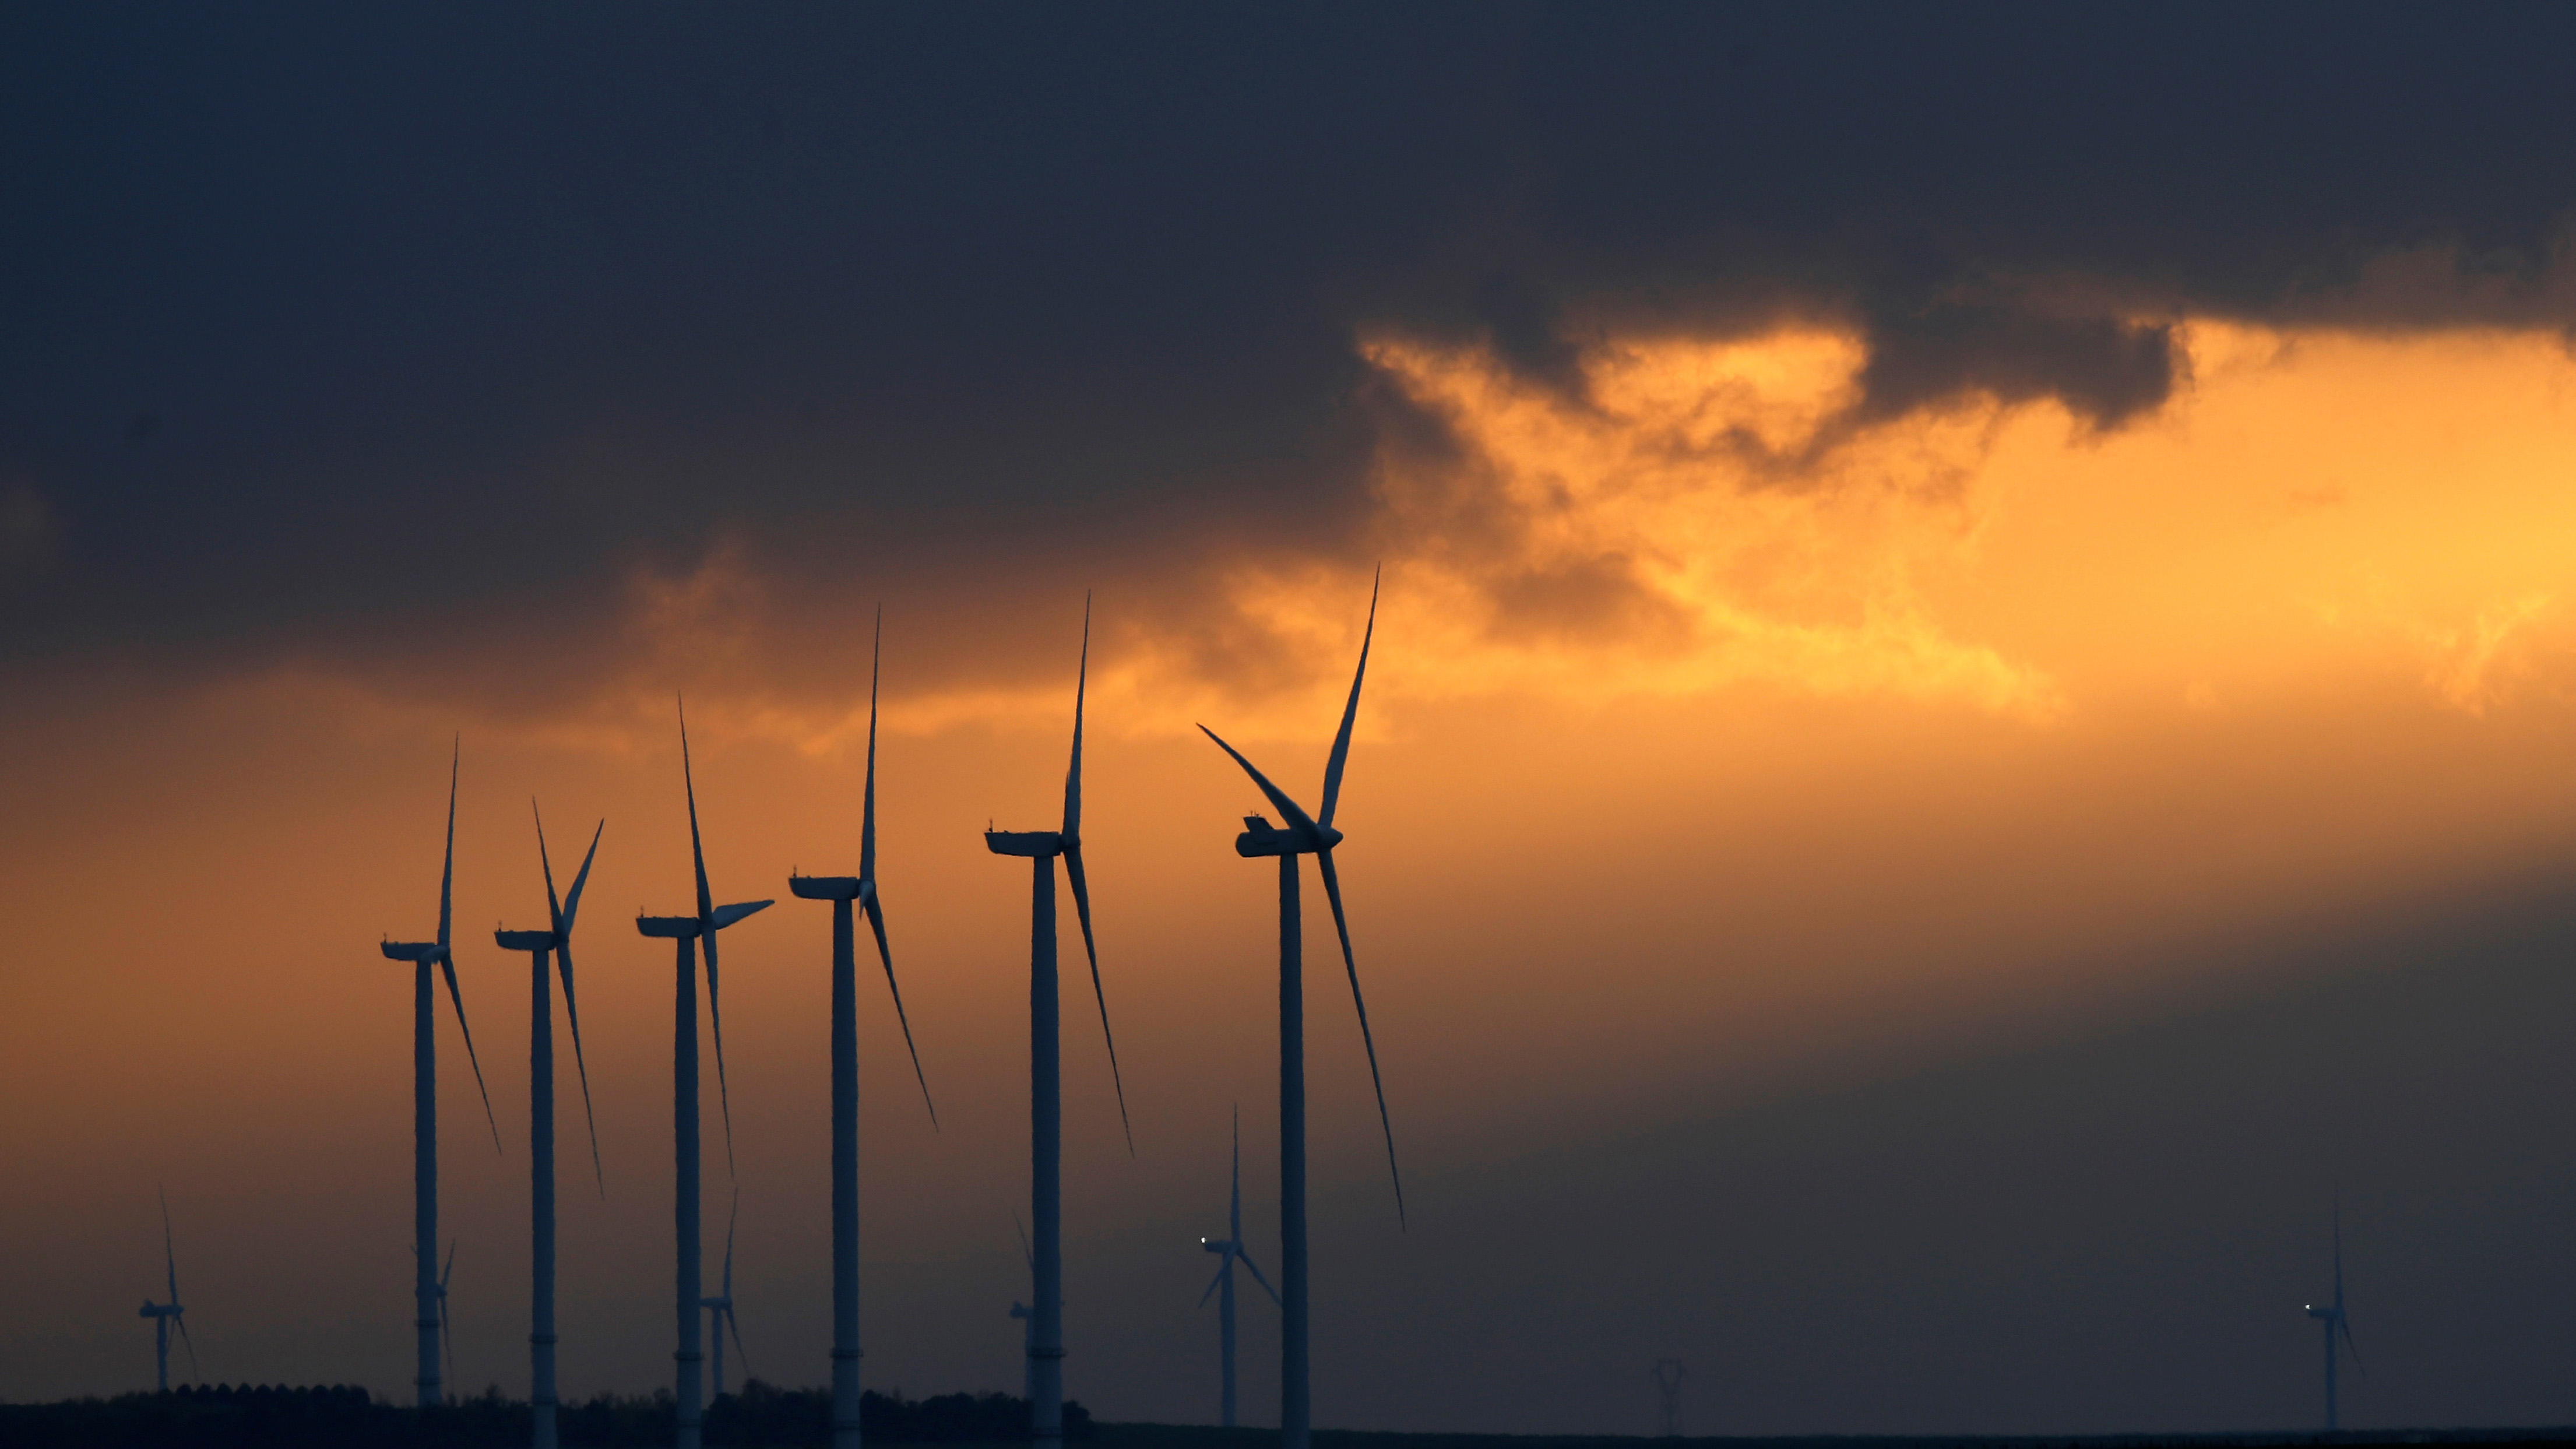 Power-generating windmill turbines are seen during sunset at a wind park near Reims, France, November 13, 2017. REUTERS/Christian Hartmann - RC1406F2E060